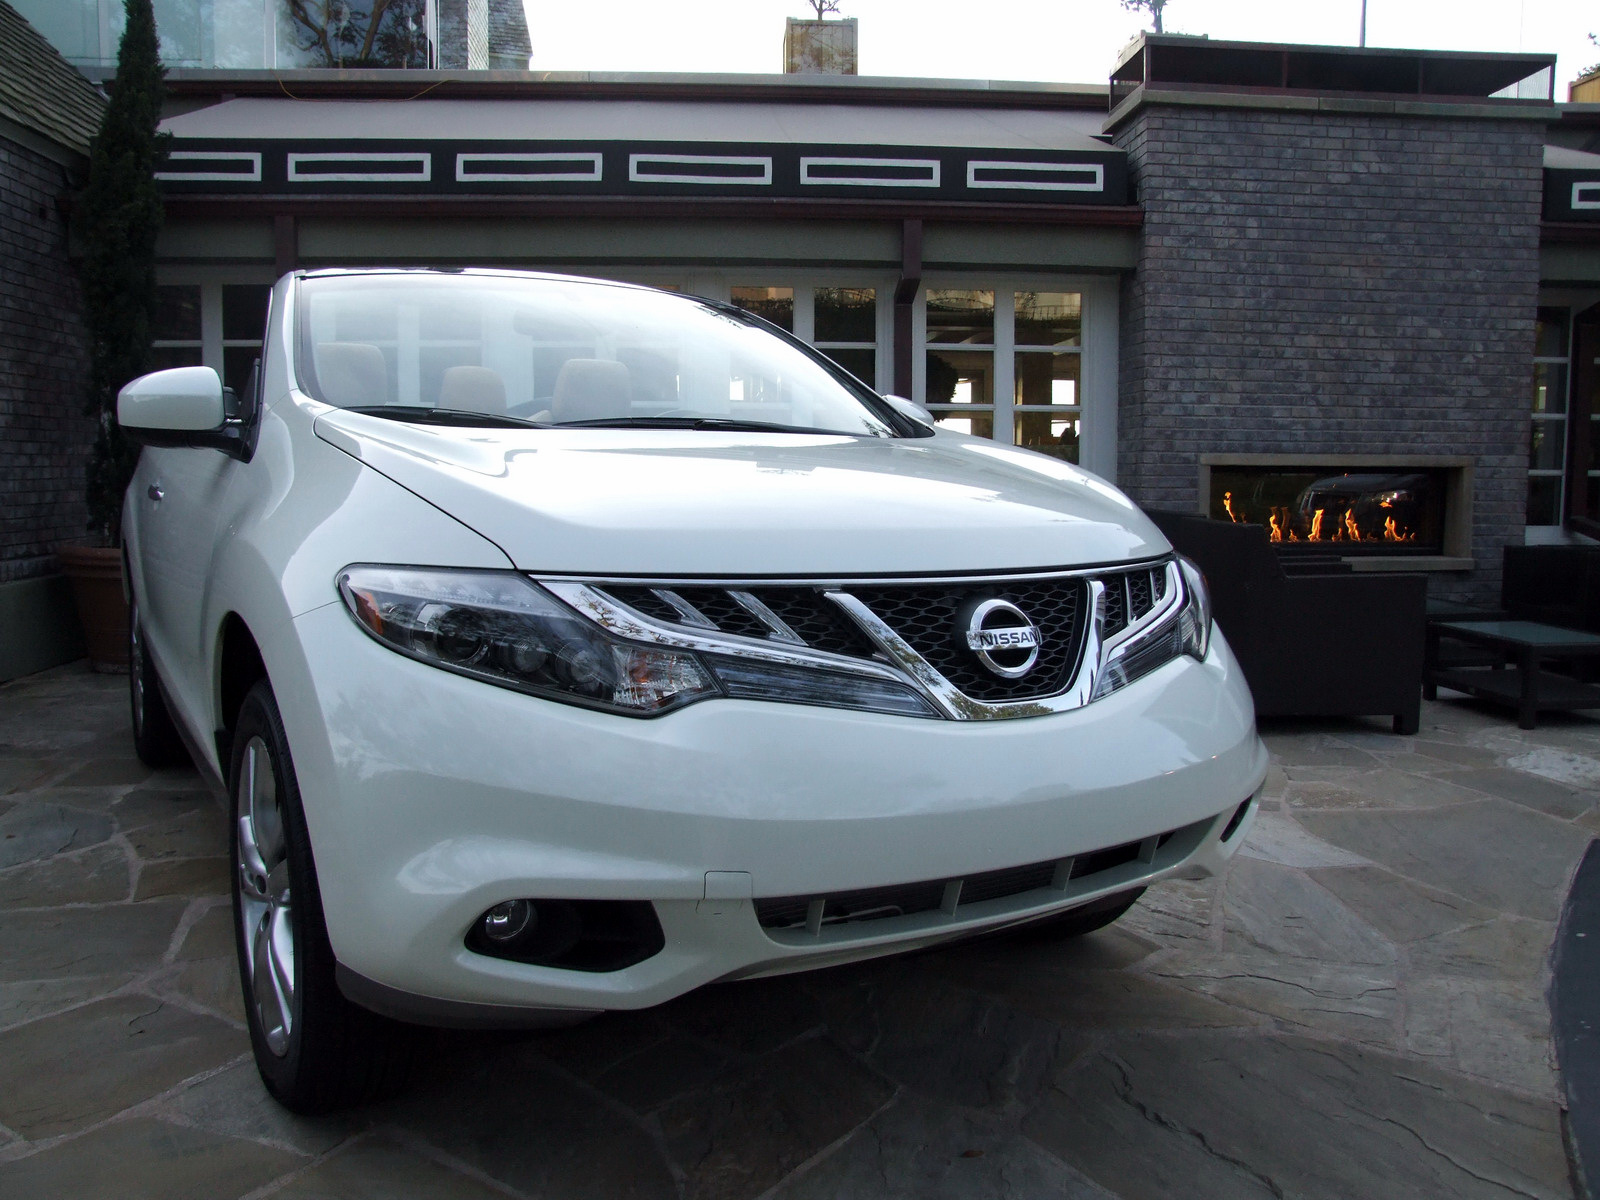 2010 - [Nissan] Murano CrossCabriolet - Page 4 2011-Nissan-Murano-CC-TD-631